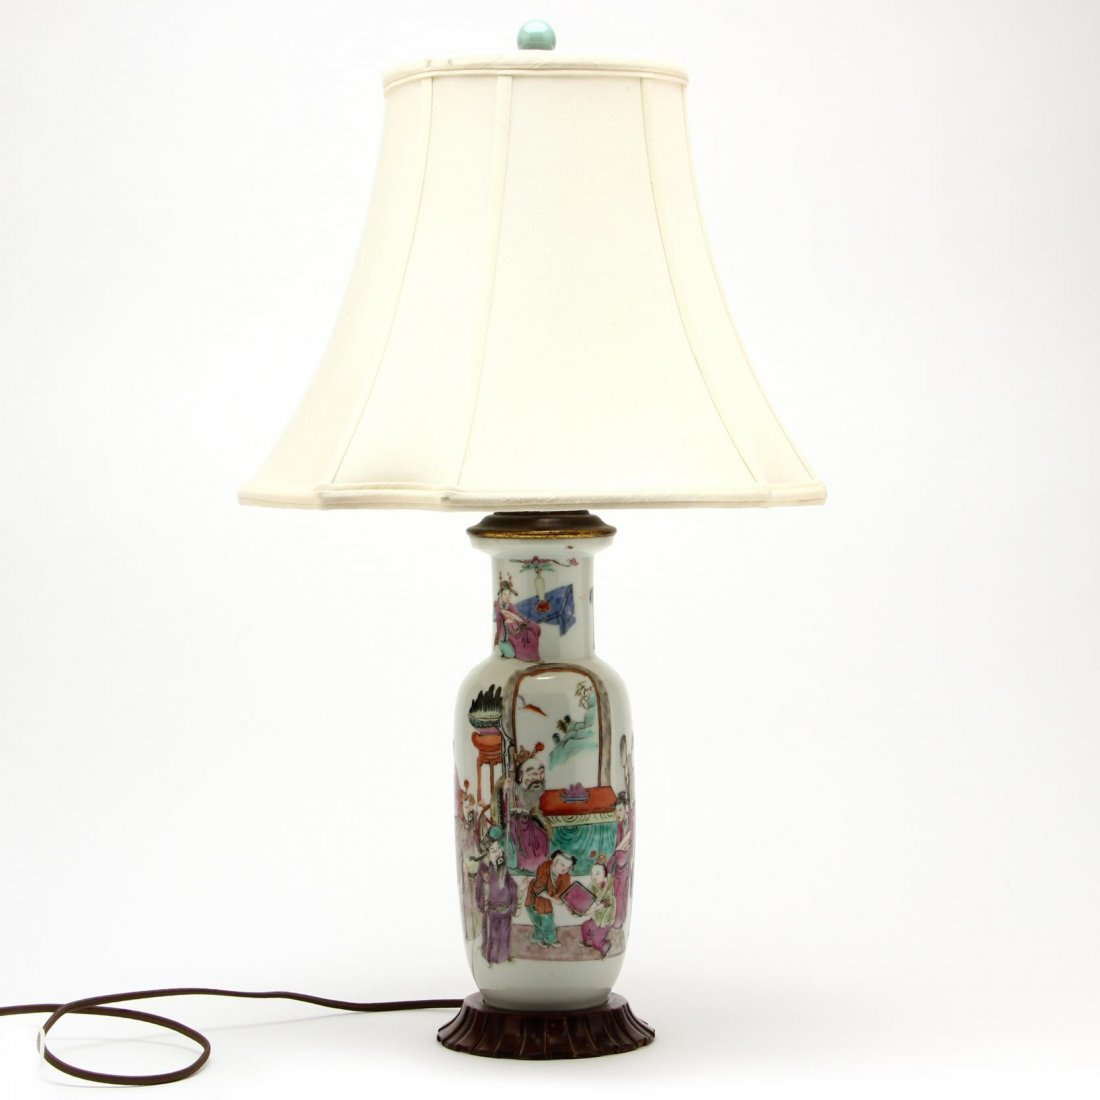 Pair of Chinese Export Porcelain Lamps - 2